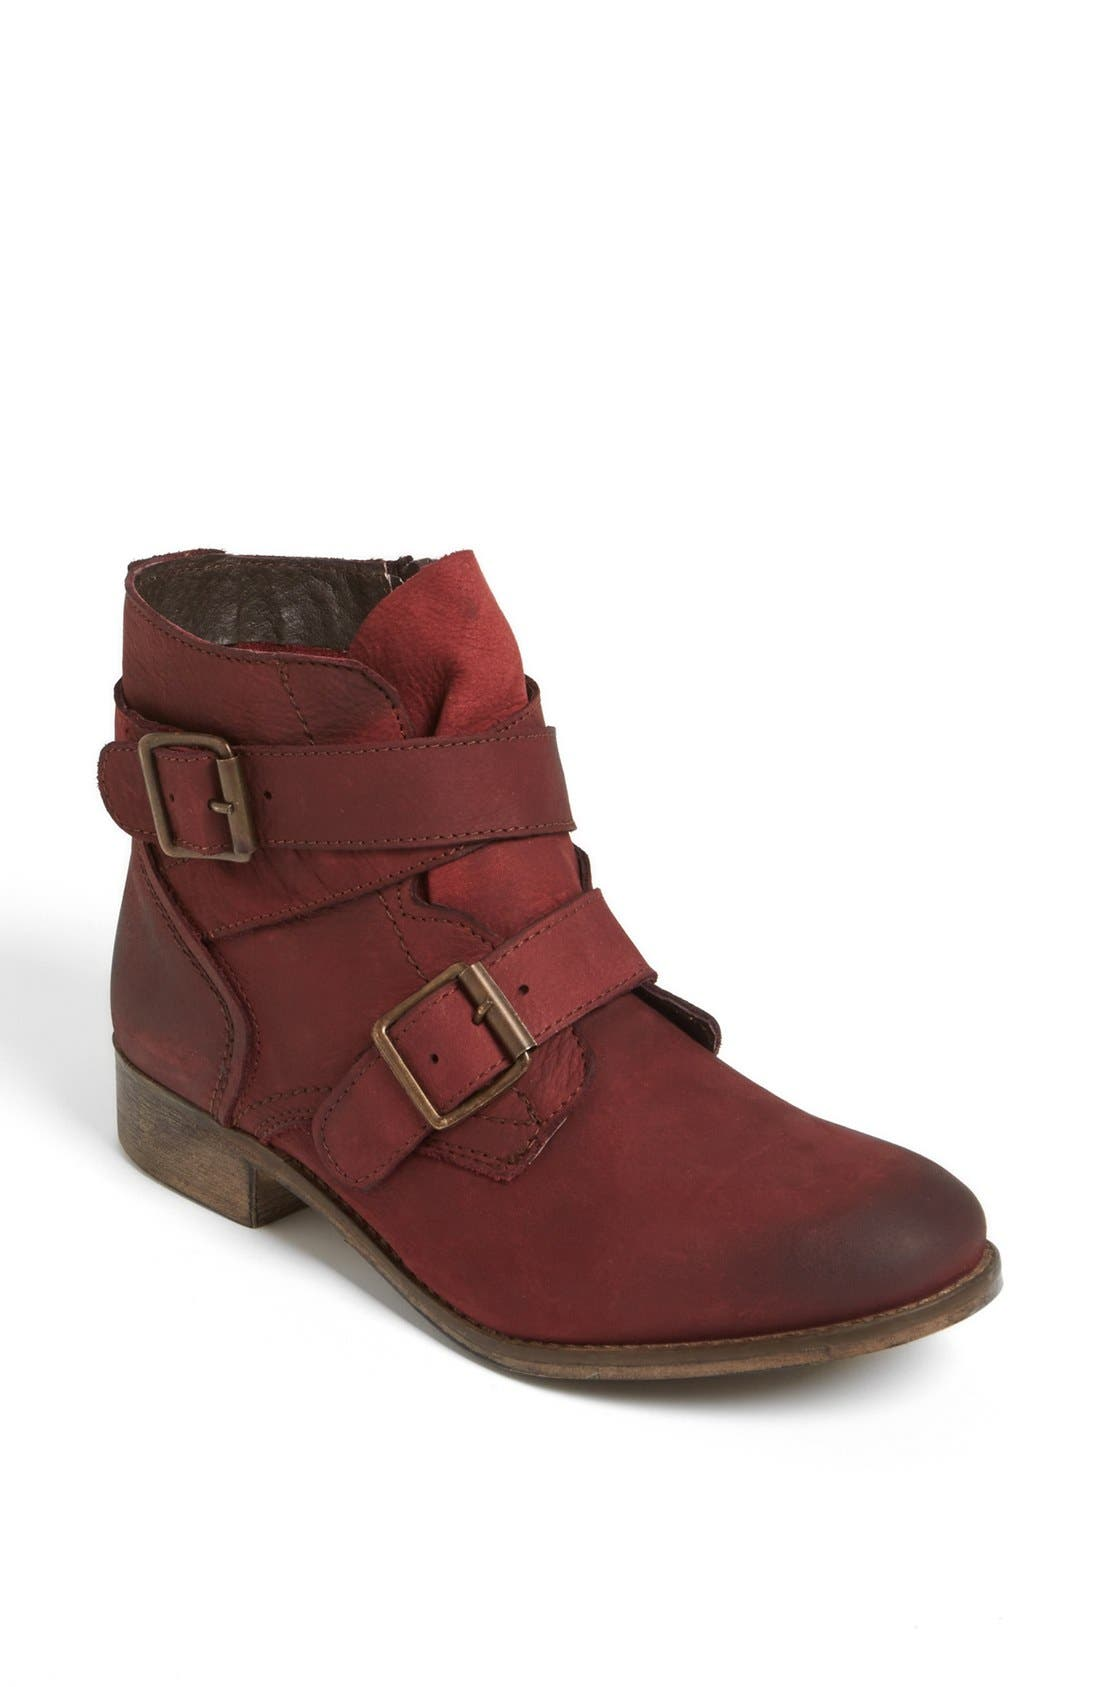 Main Image - Steve Madden 'Teritory' Boot